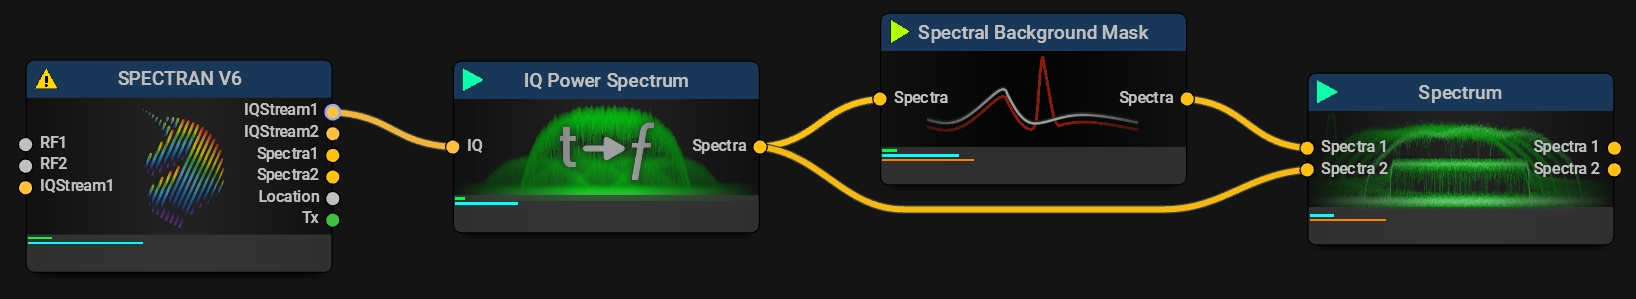 Spectral Background Mask Typical Mission